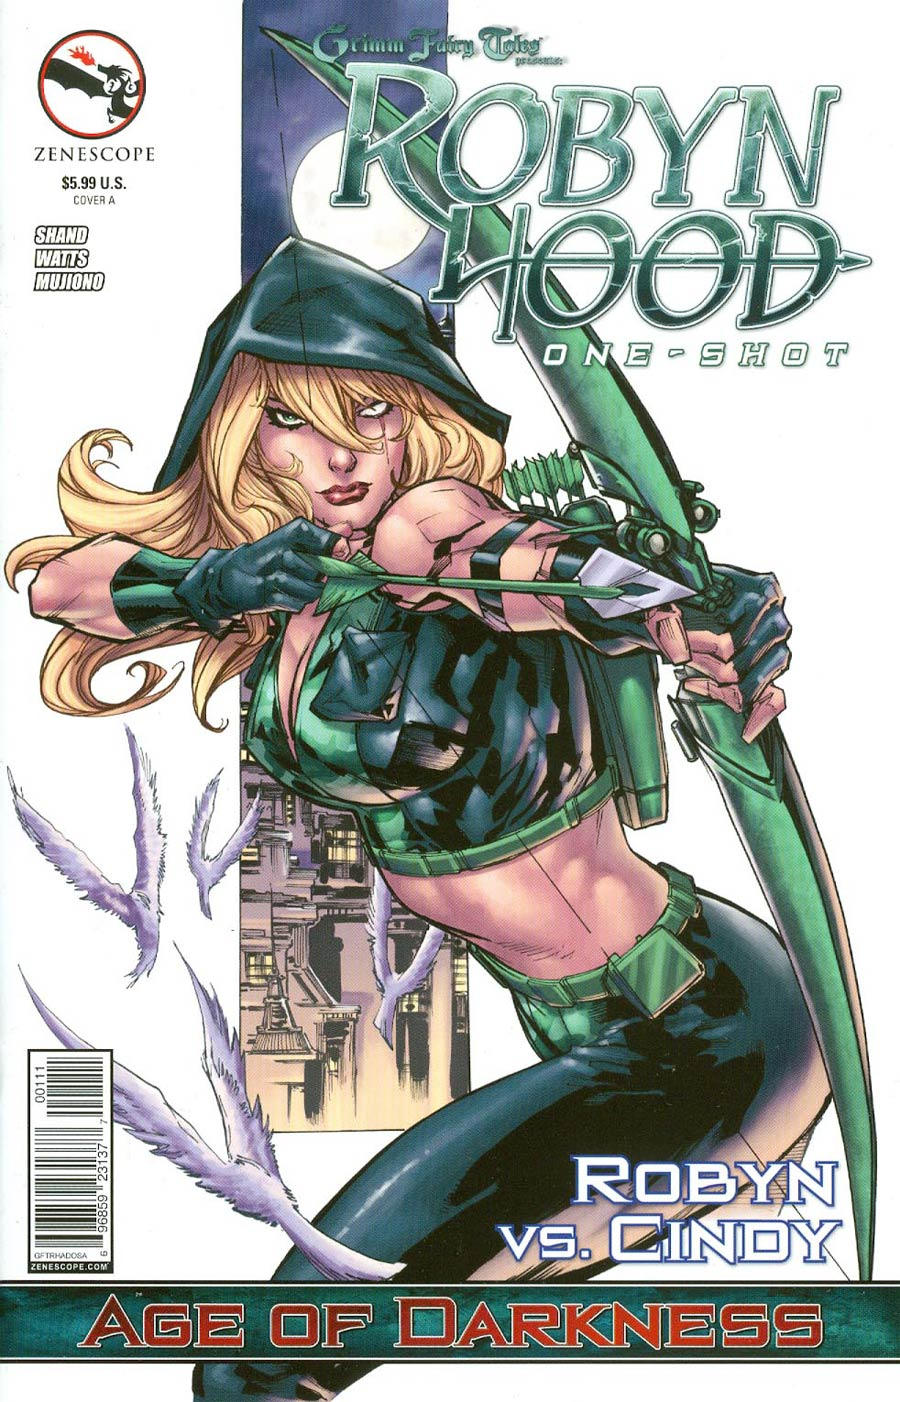 Grimm Fairy Tales Presents Robyn Hood Age Of Darkness Cover A Ken Lashley (Age Of Darkness Tie-In)